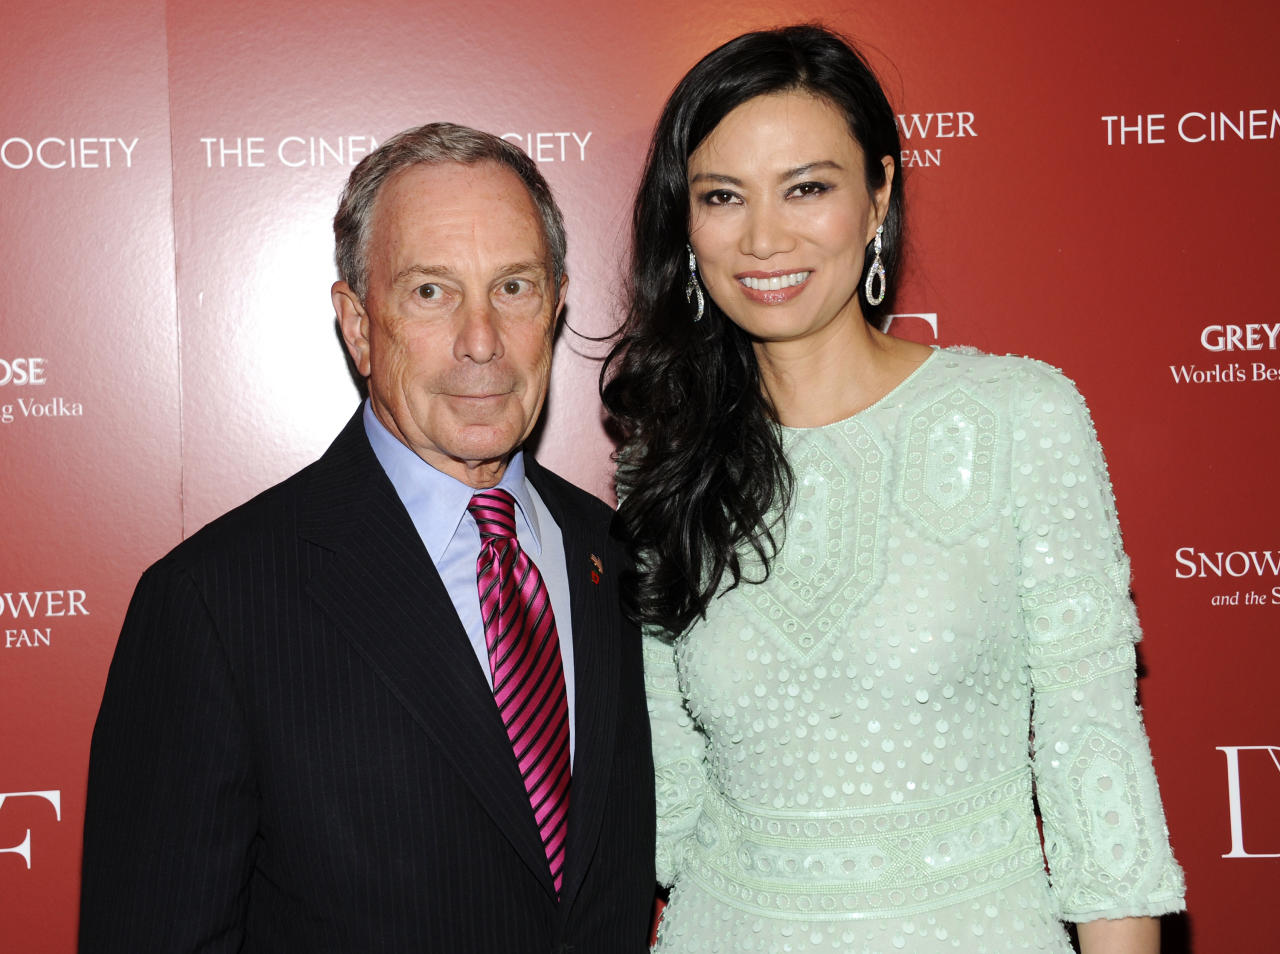 New York Mayor Michael Bloomberg and producer Wendi Murdoch attend a special screening of 'Snow Flower and the Secret Fan' hosted by the Cinema Society at the Tribeca Grand Hotel on Wednesday, July 13, 2011 in New York. (AP Photo/Evan Agostini)